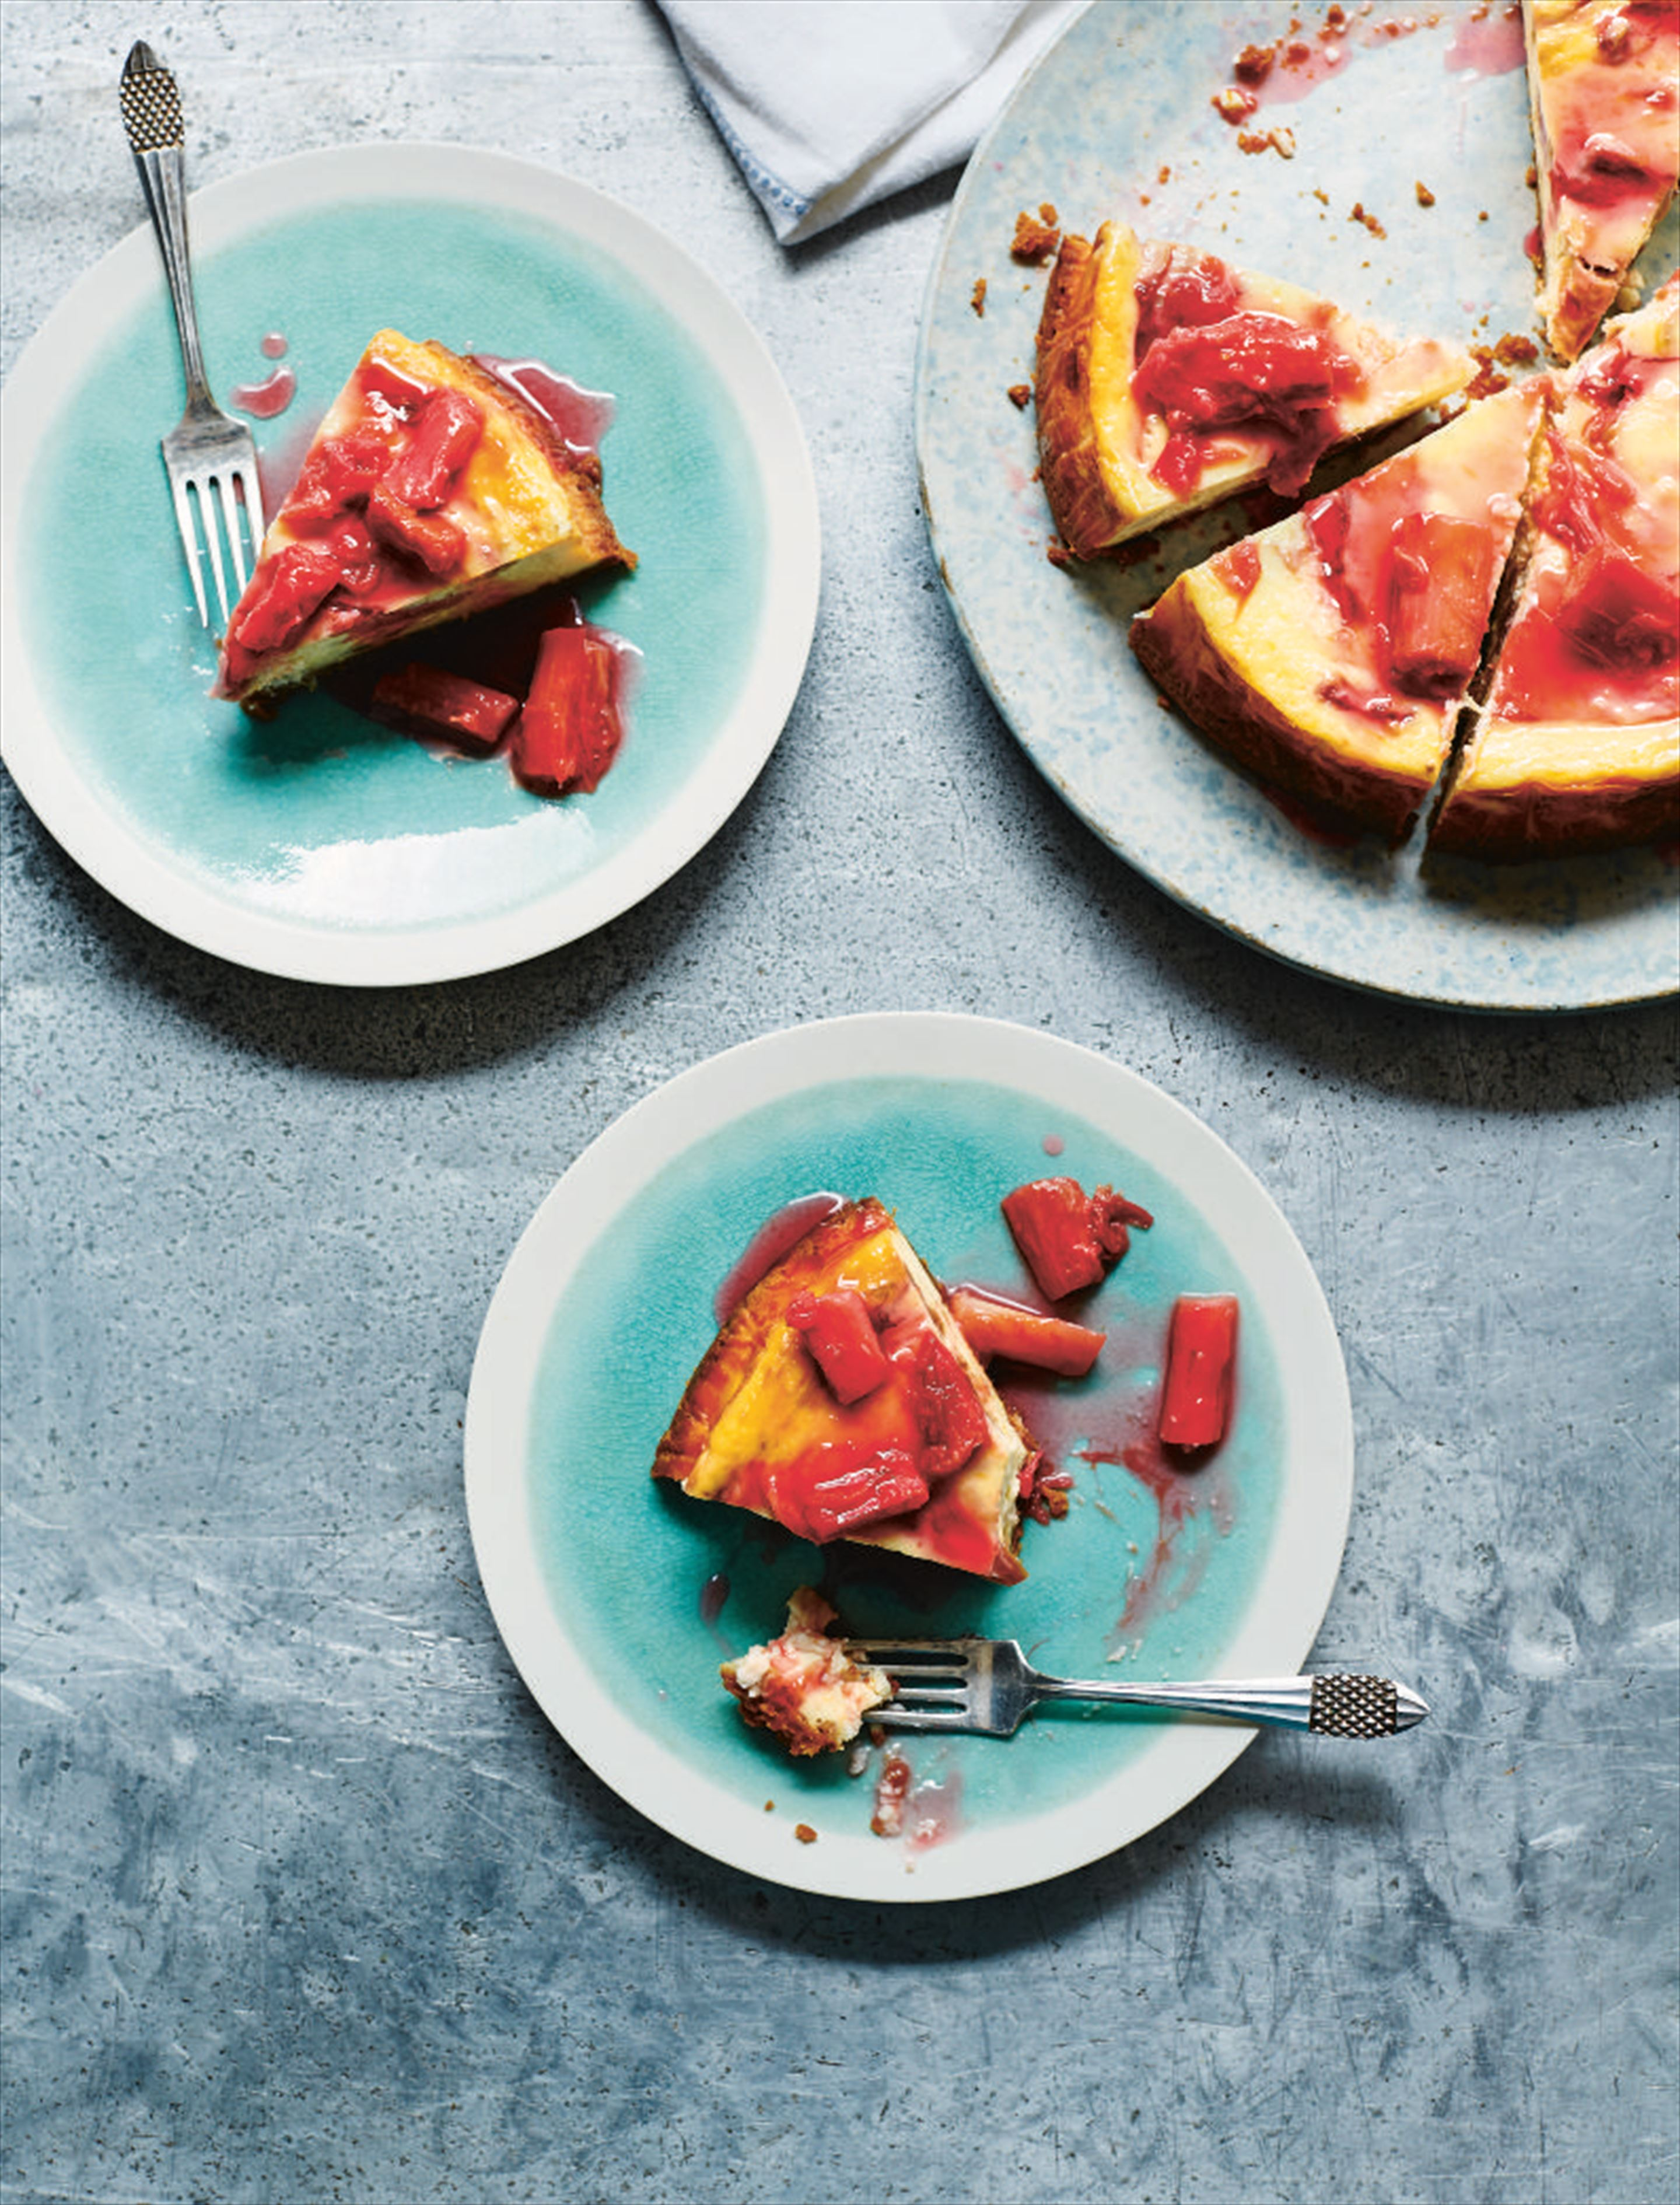 Rhubarb and cardamom cheese cake